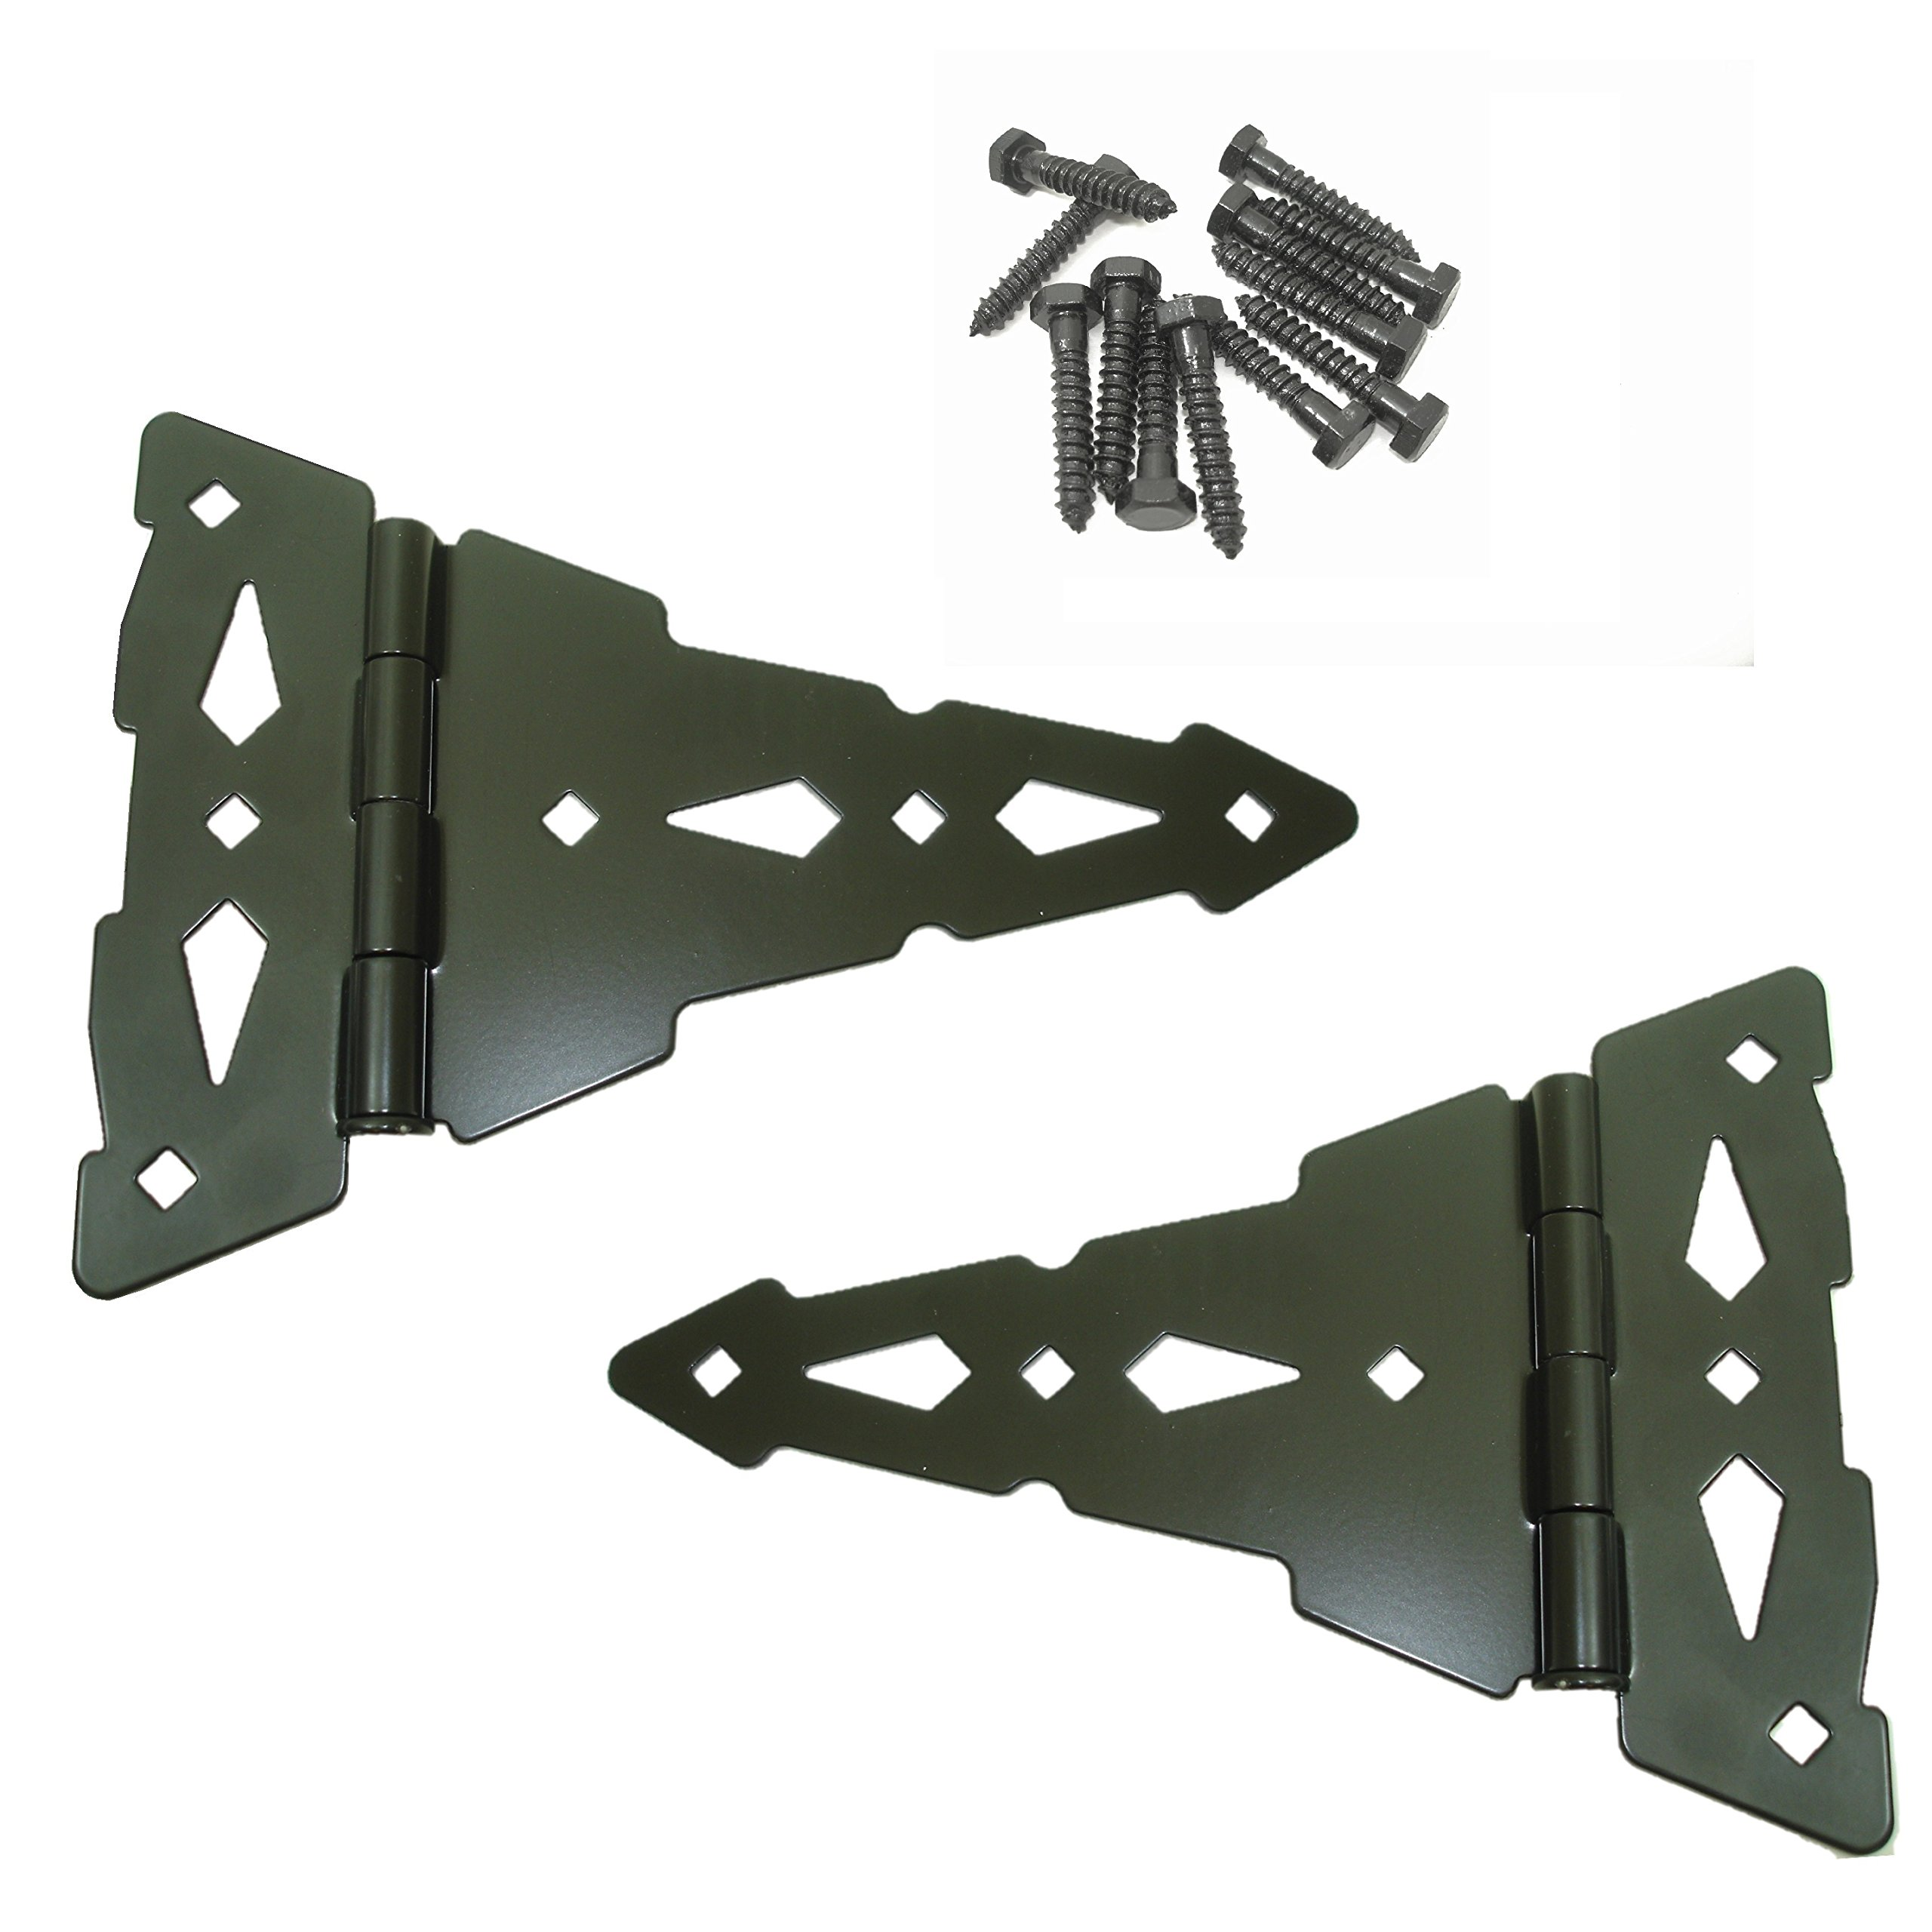 Cheap Lowes Gate Hinges Find Lowes Gate Hinges Deals On Line At Alibaba Com